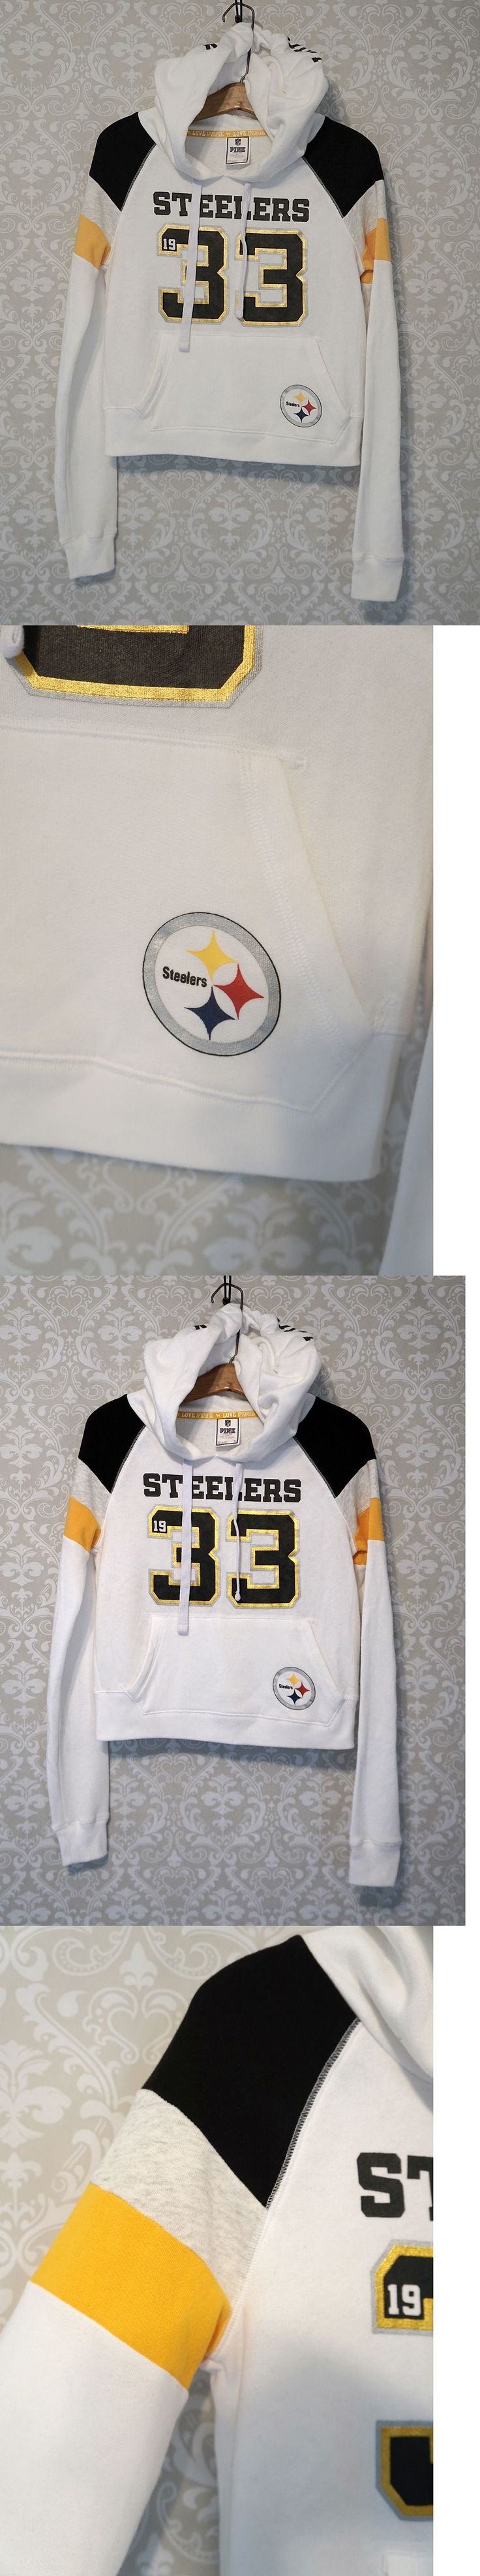 Sweats and Hoodies 155226: Rare | Nfl Steelers Victoria S Secret | Vs Pink | Football Hoodie Sweatshirt | S -> BUY IT NOW ONLY: $38.6 on eBay!